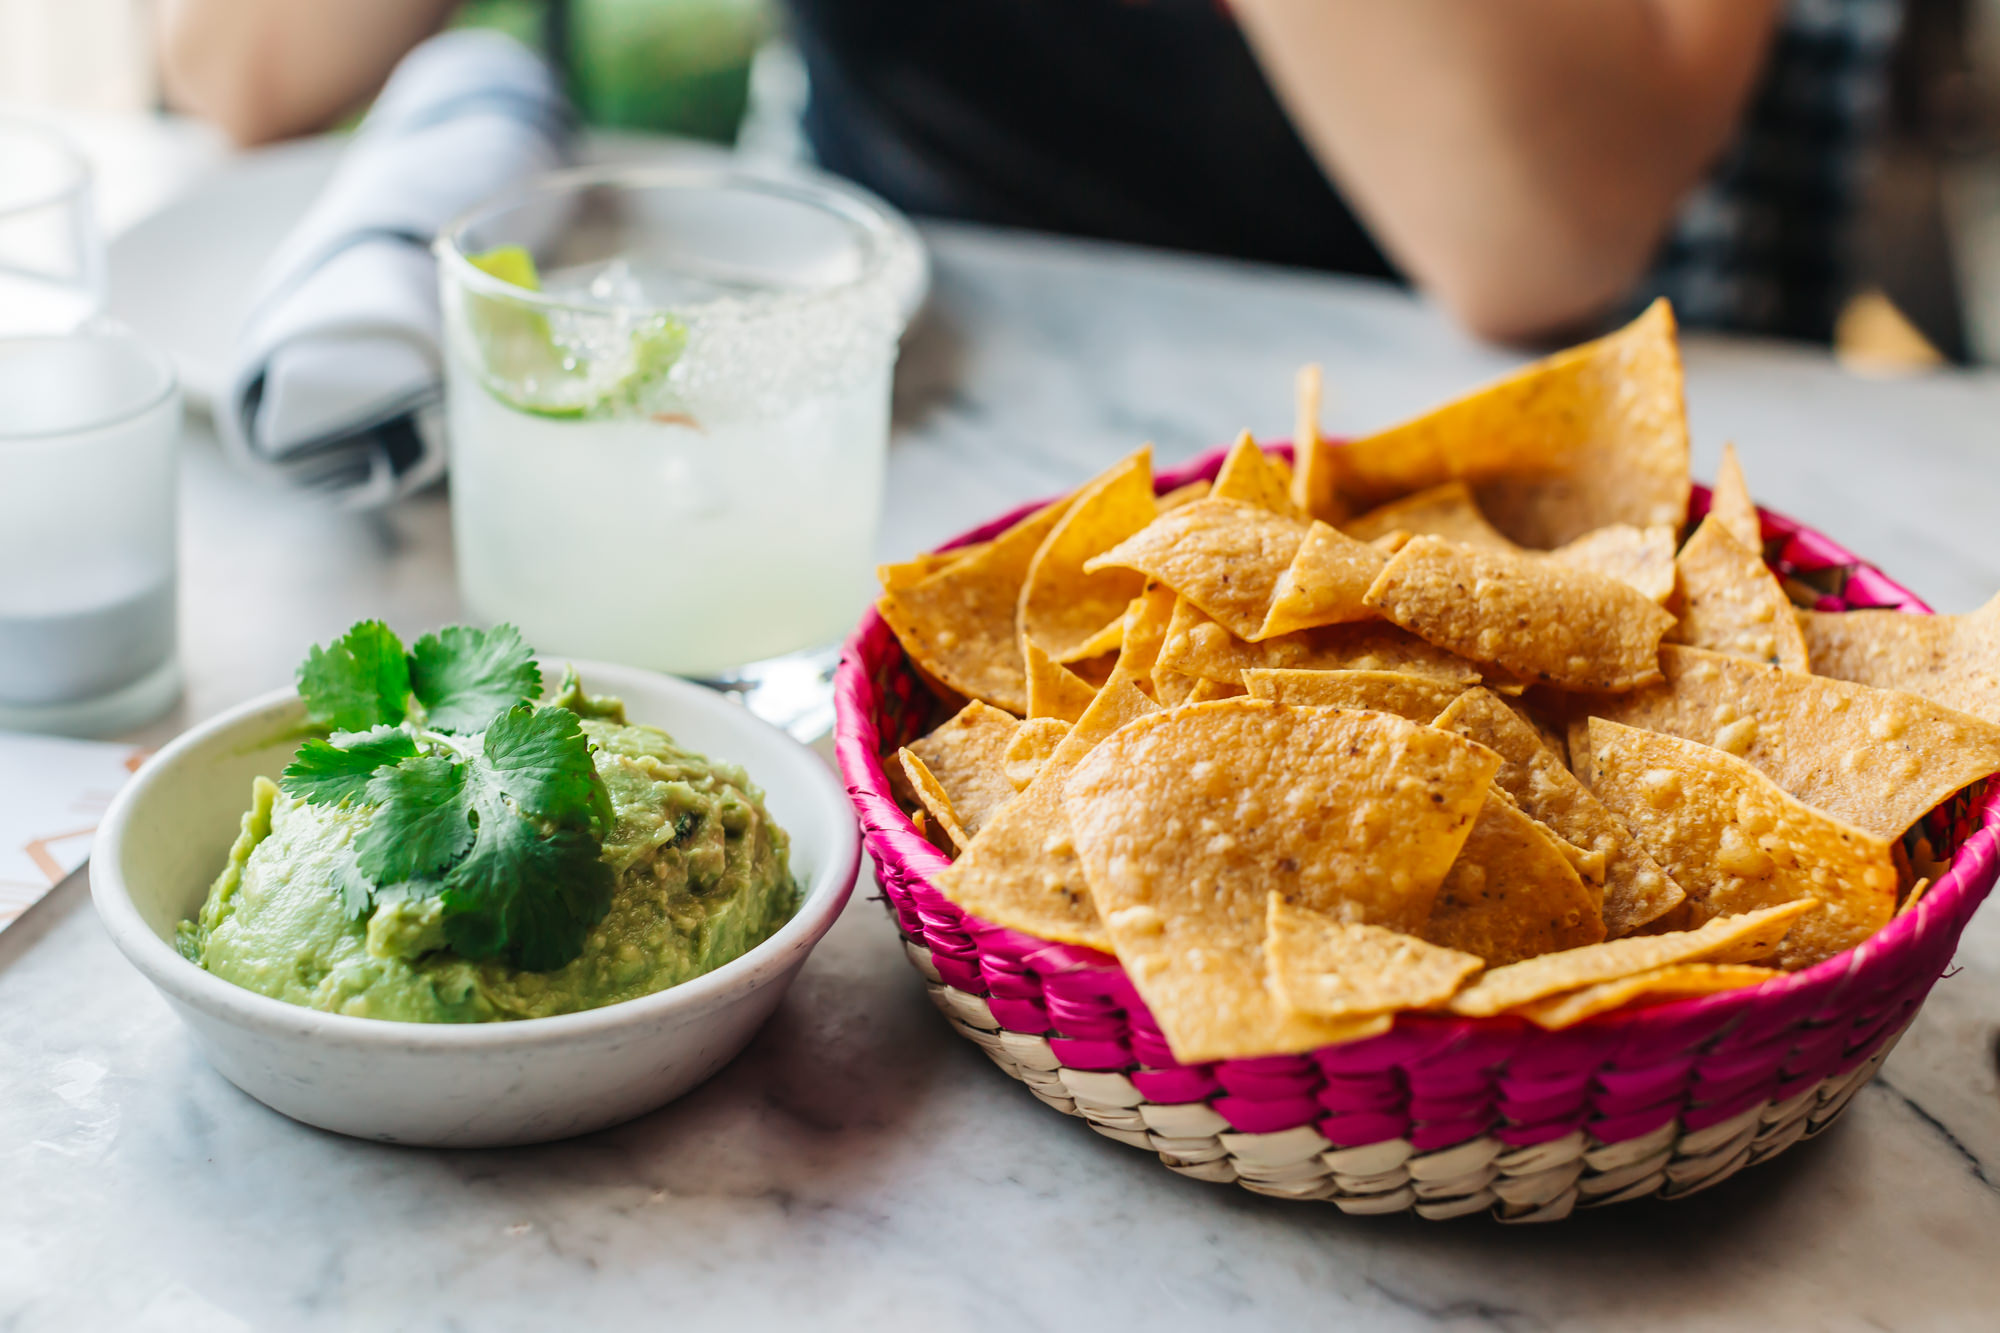 Guacamole with house-made chips